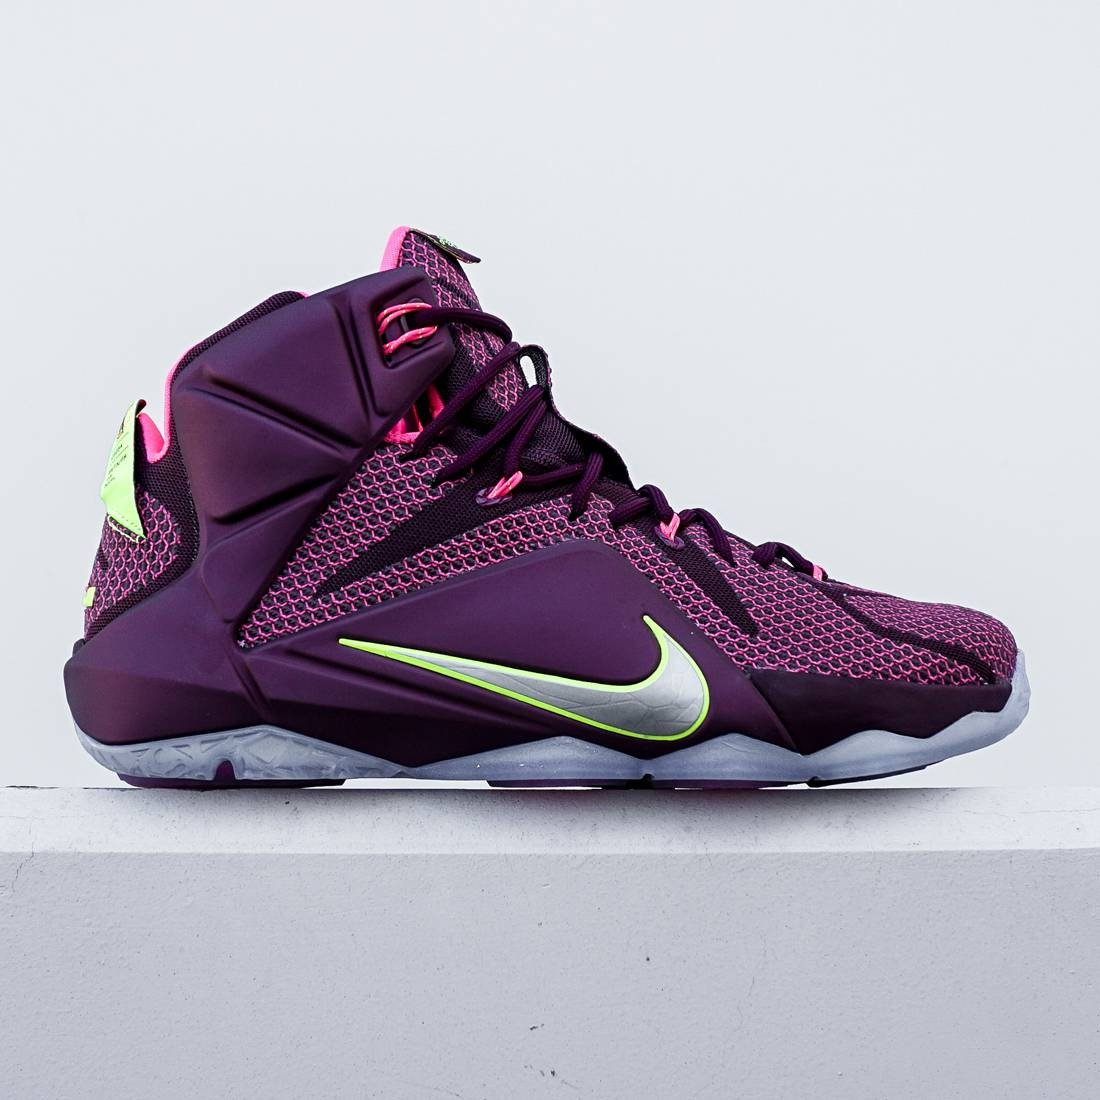 Nike Men LeBron XII - Double Helix (burgundy / pink)